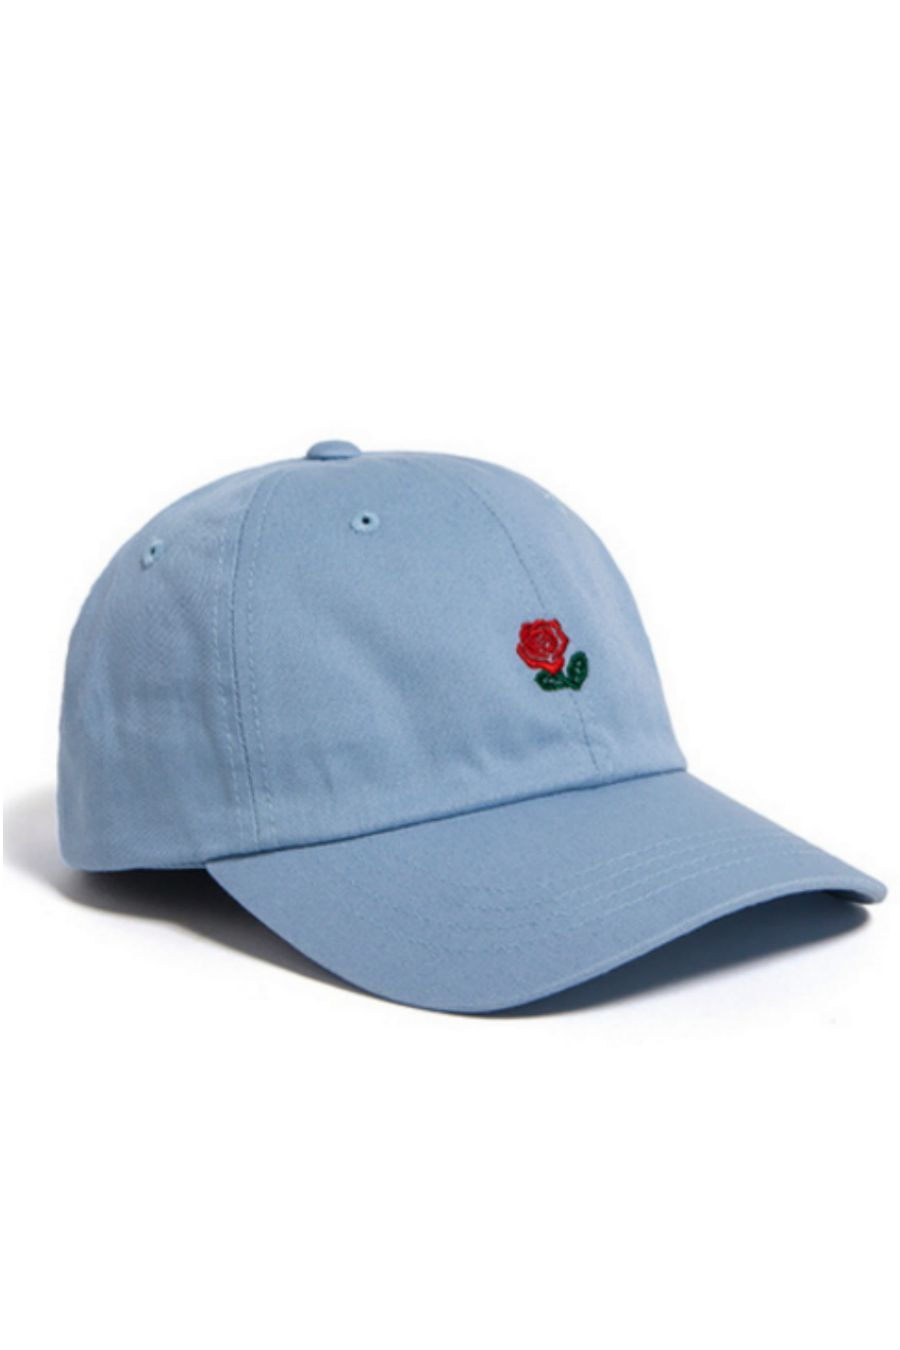 10998d0b Rose Embroidered Hat In Blue. Rose Embroidered Hat In Blue Visors, Polo Hats  ...